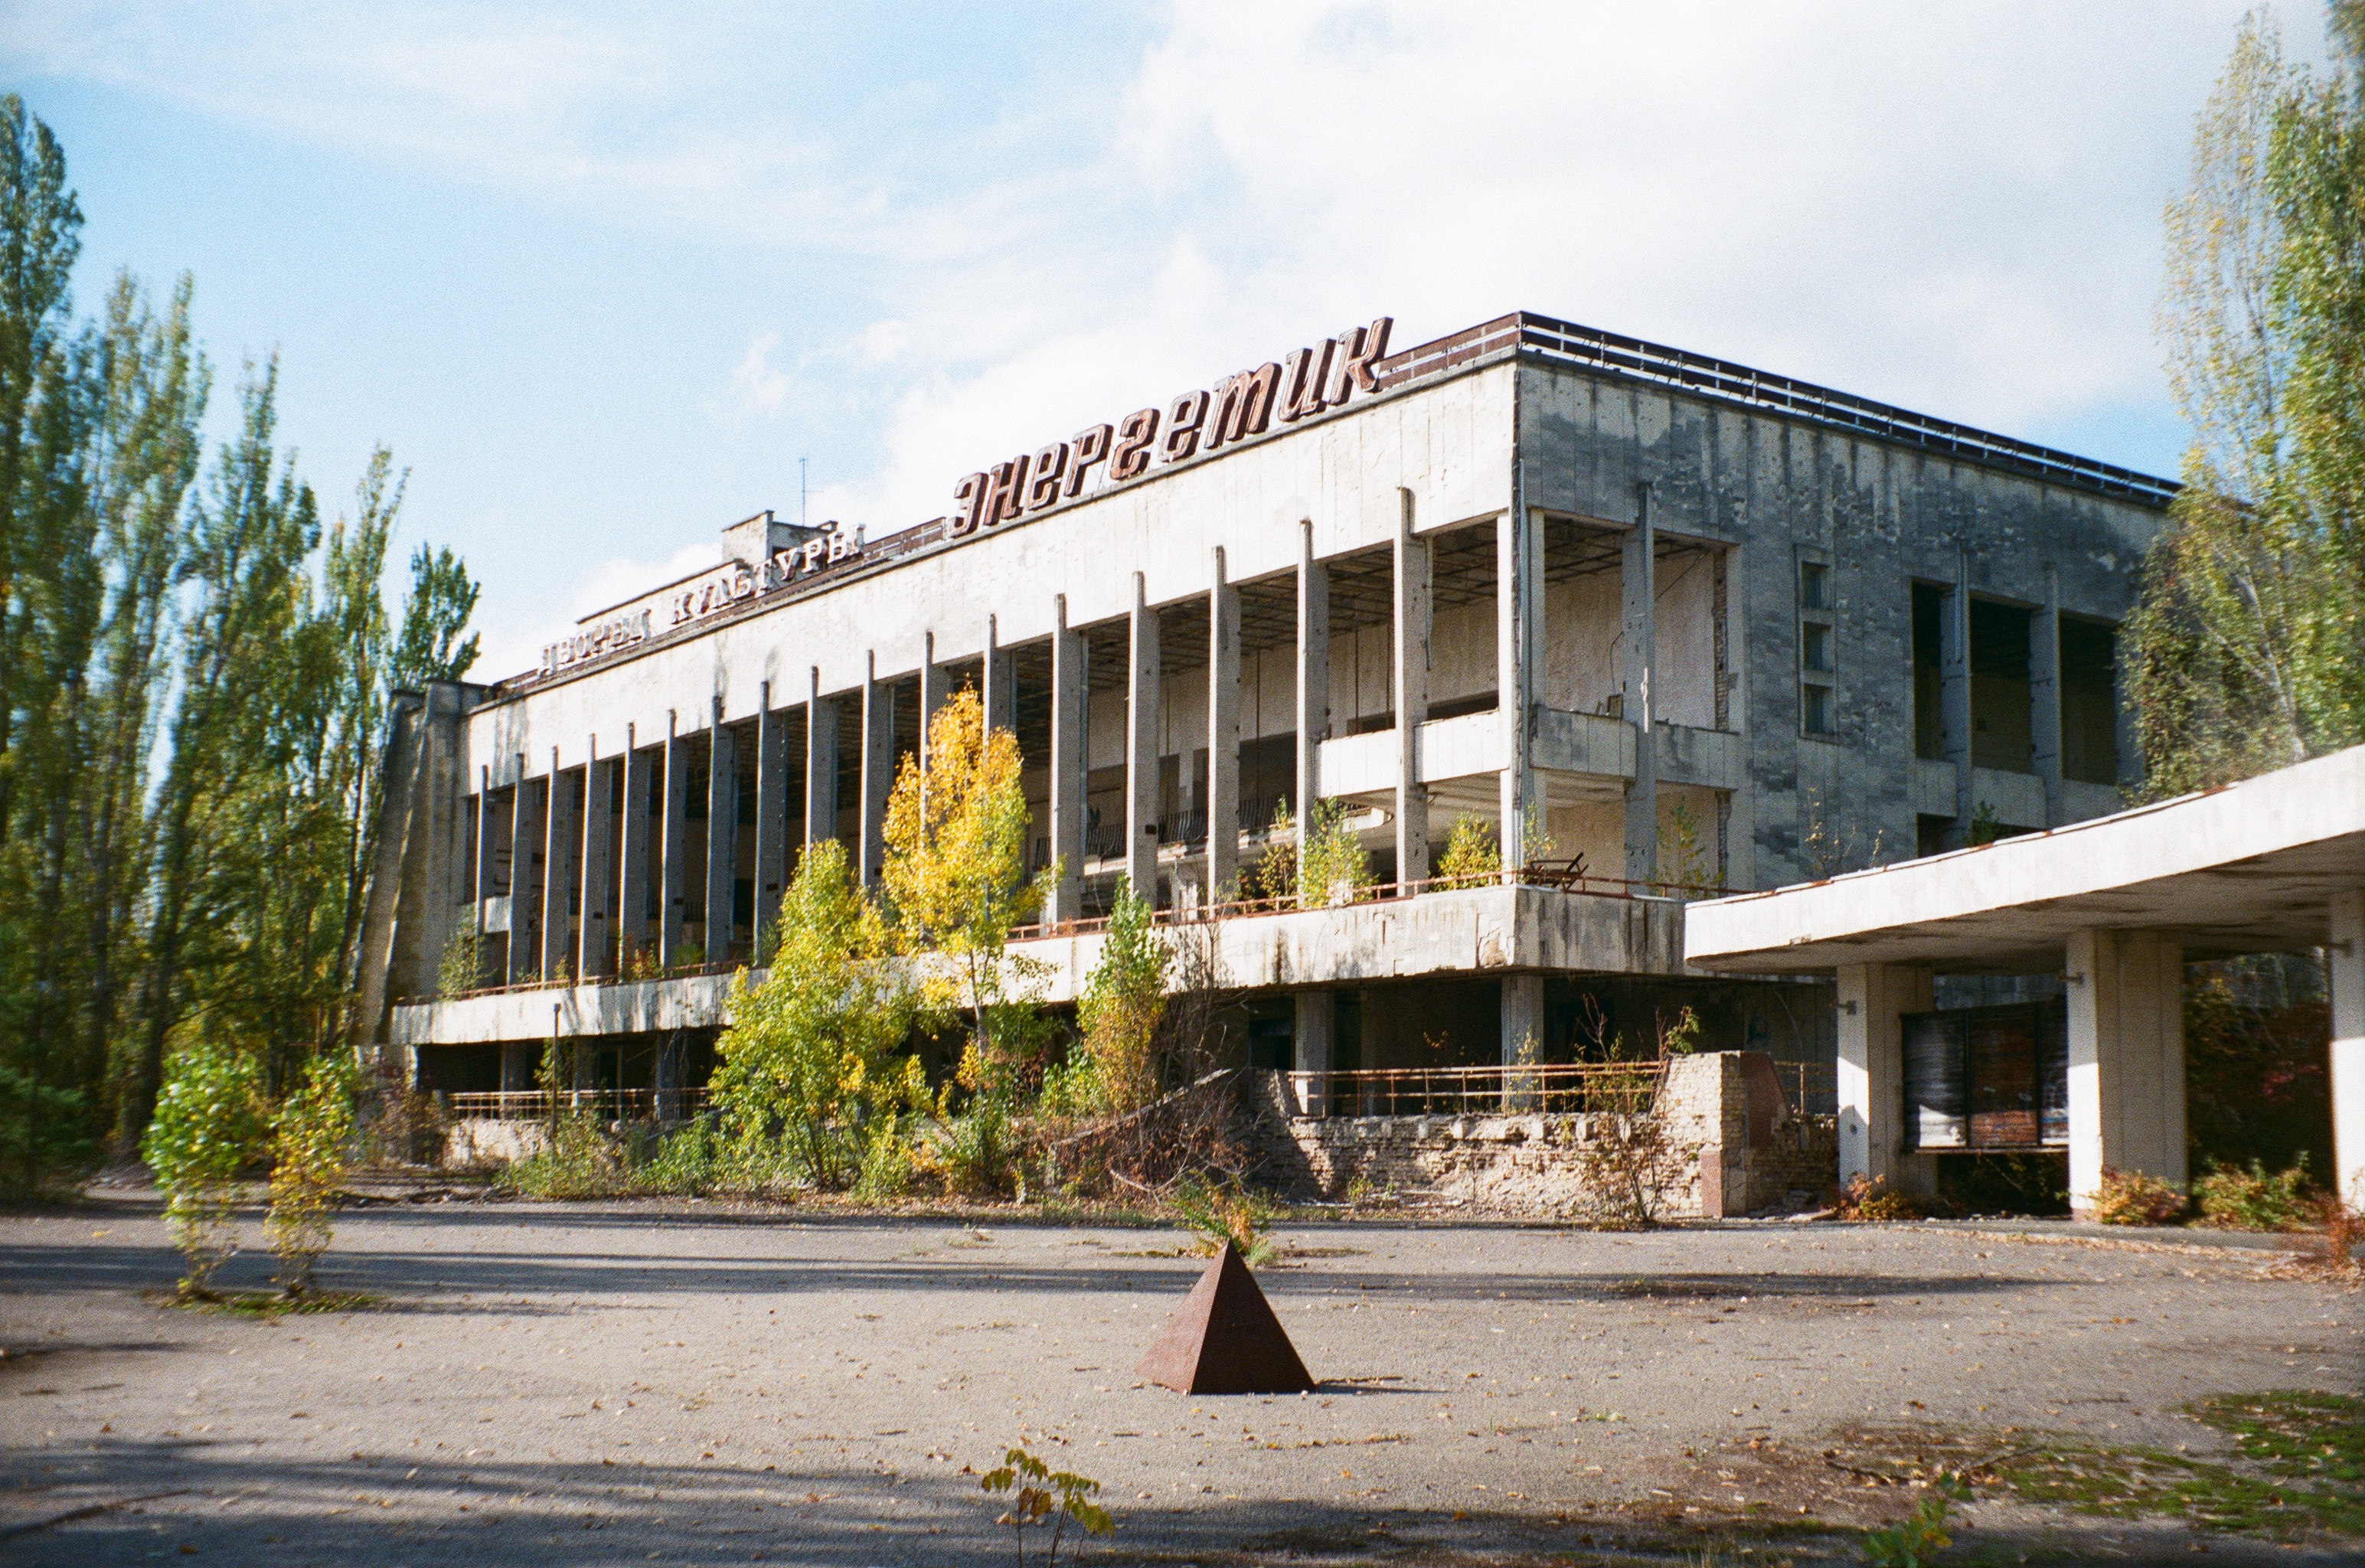 35mm pripyat building chernobyl